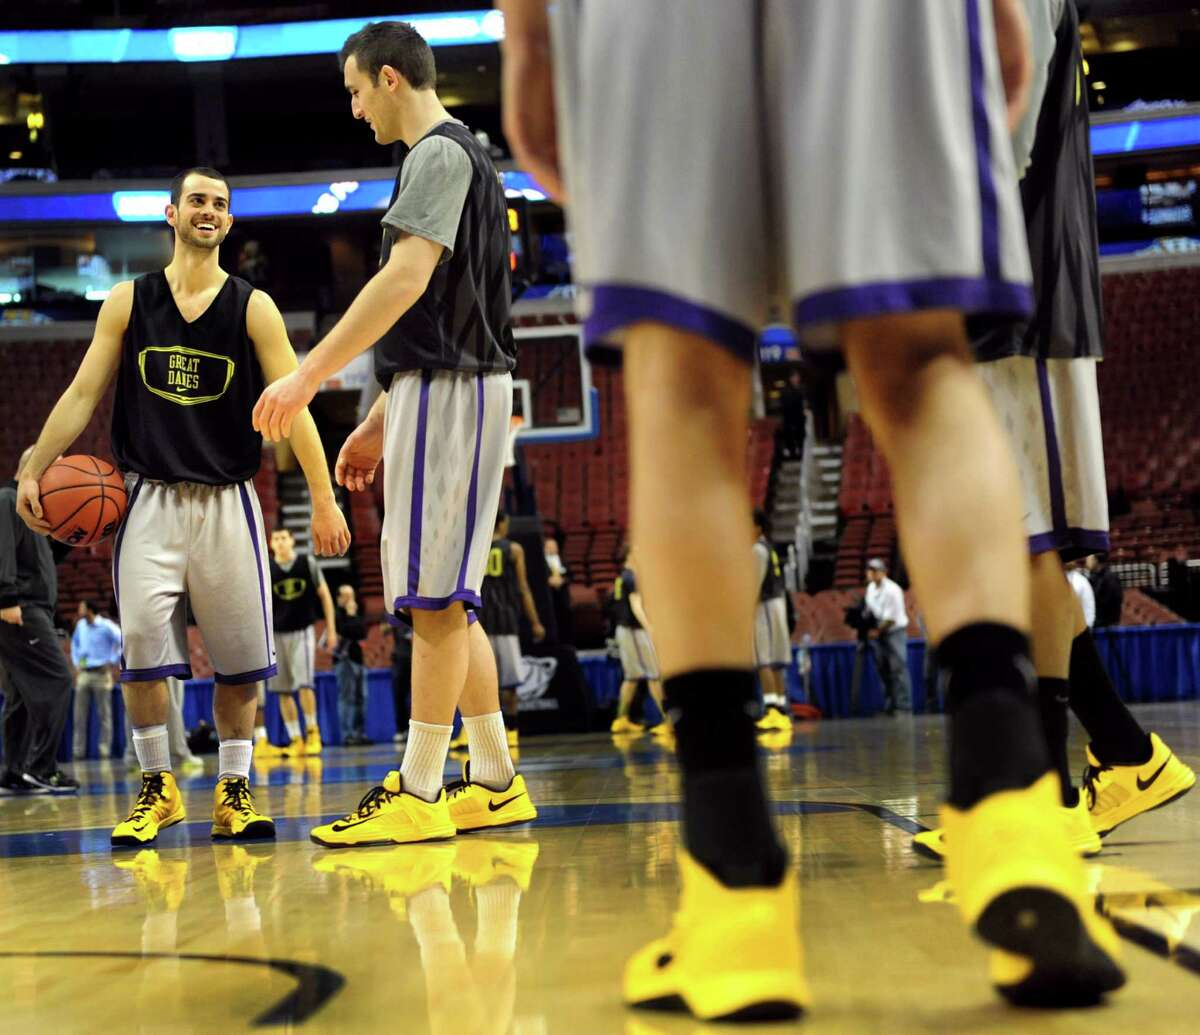 UAlbany's Jacob Iati, left, and Sam Rowley, center, enjoy the moment as they get court time during the NCAA Tournament open practice on Thursday, March 21, 2013, at Wells Fargo Center in Philadelphia, Penn. UAlbany plays Duke in the second round on Friday at 12:15 p.m. (Cindy Schultz / Times Union)